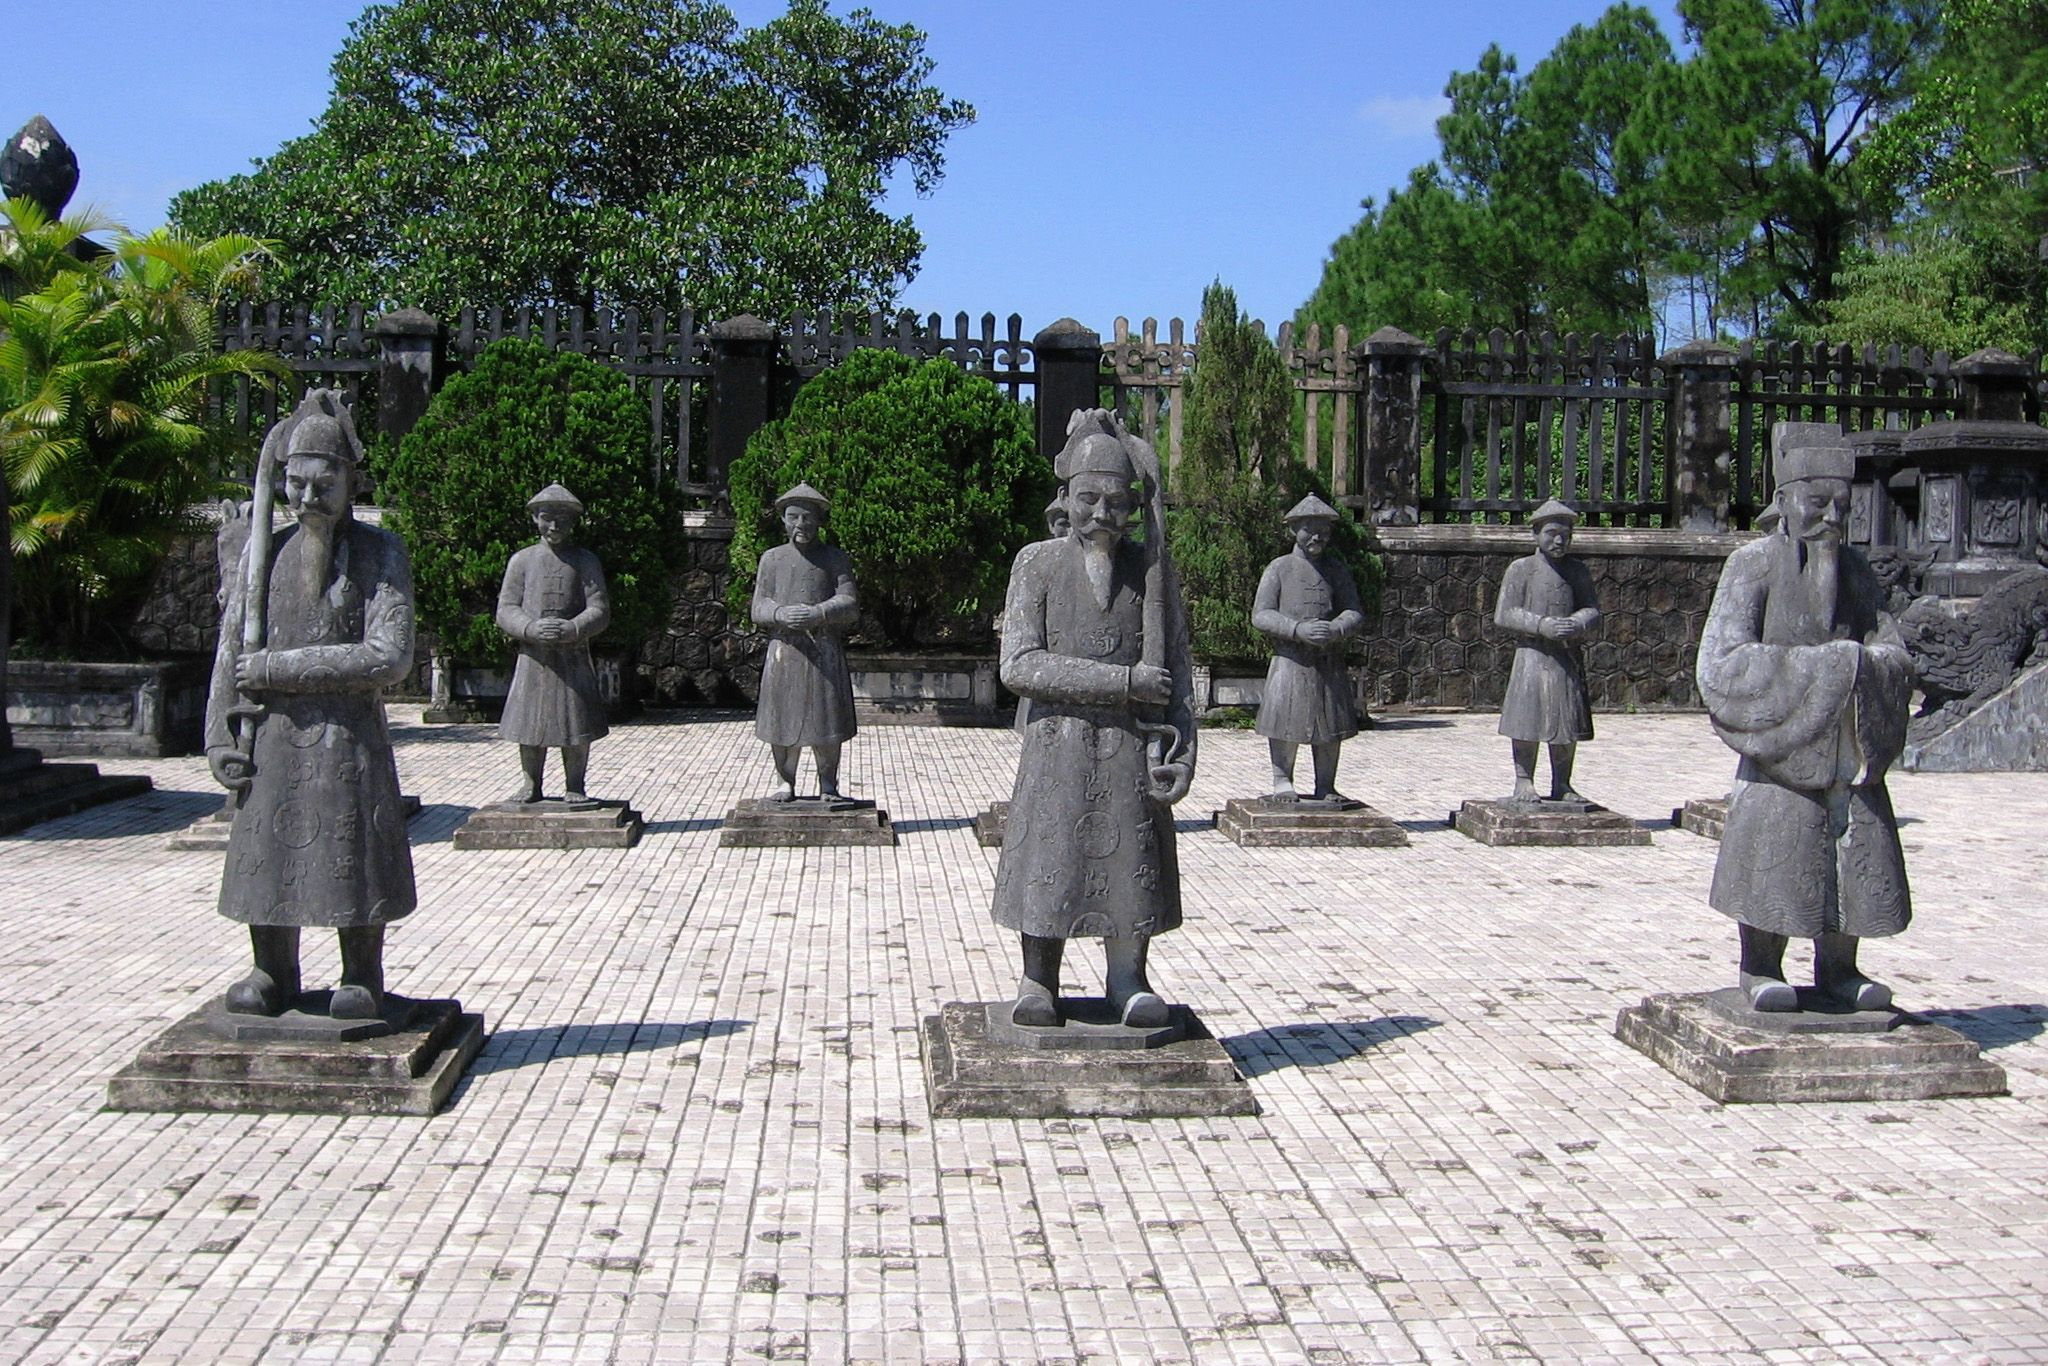 Honor Guard of soldiers, forecourt, Khai Dinh Royal Tomb, Hue, Vietnam.